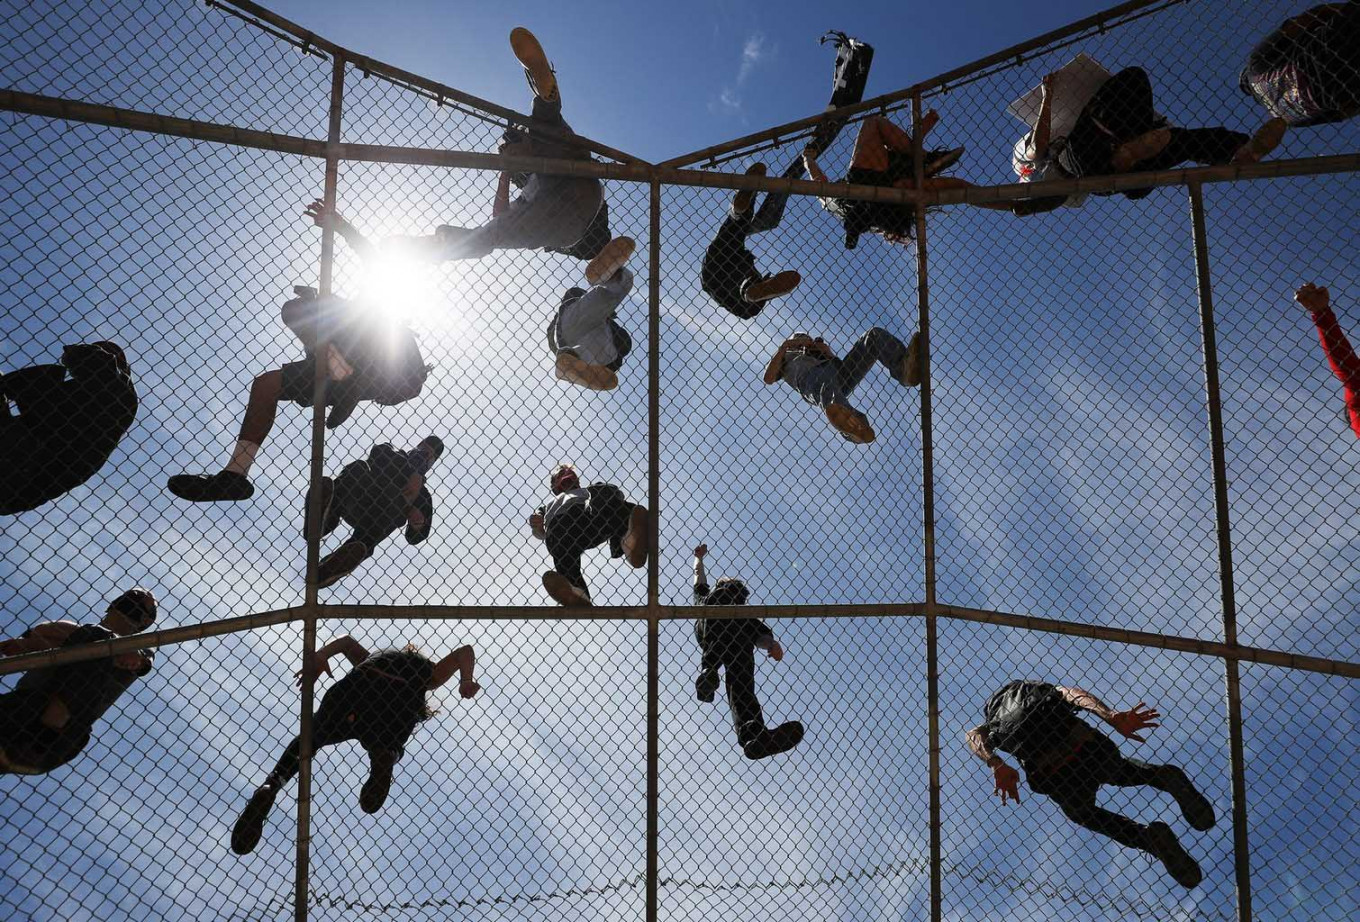 Protestors listen to speeches from atop a baseball backstop during a Black Lives Matter demonstration following the death of George Floyd on May 30, 2020 in Los Angeles, California. The vast majority of protestors demonstrated peacefully. Former Minneapolis police officer Derek Chauvin was taken into custody for Floyd's death. Chauvin has been accused of kneeling on Floyd's neck as he pleaded with him about not being able to breathe. Floyd was pronounced dead a short while later. Chauvin and 3 other officers, who were involved in the arrest, were fired from the police department after a video of the arrest was circulated. AFP/Getty Images/Mario Tama